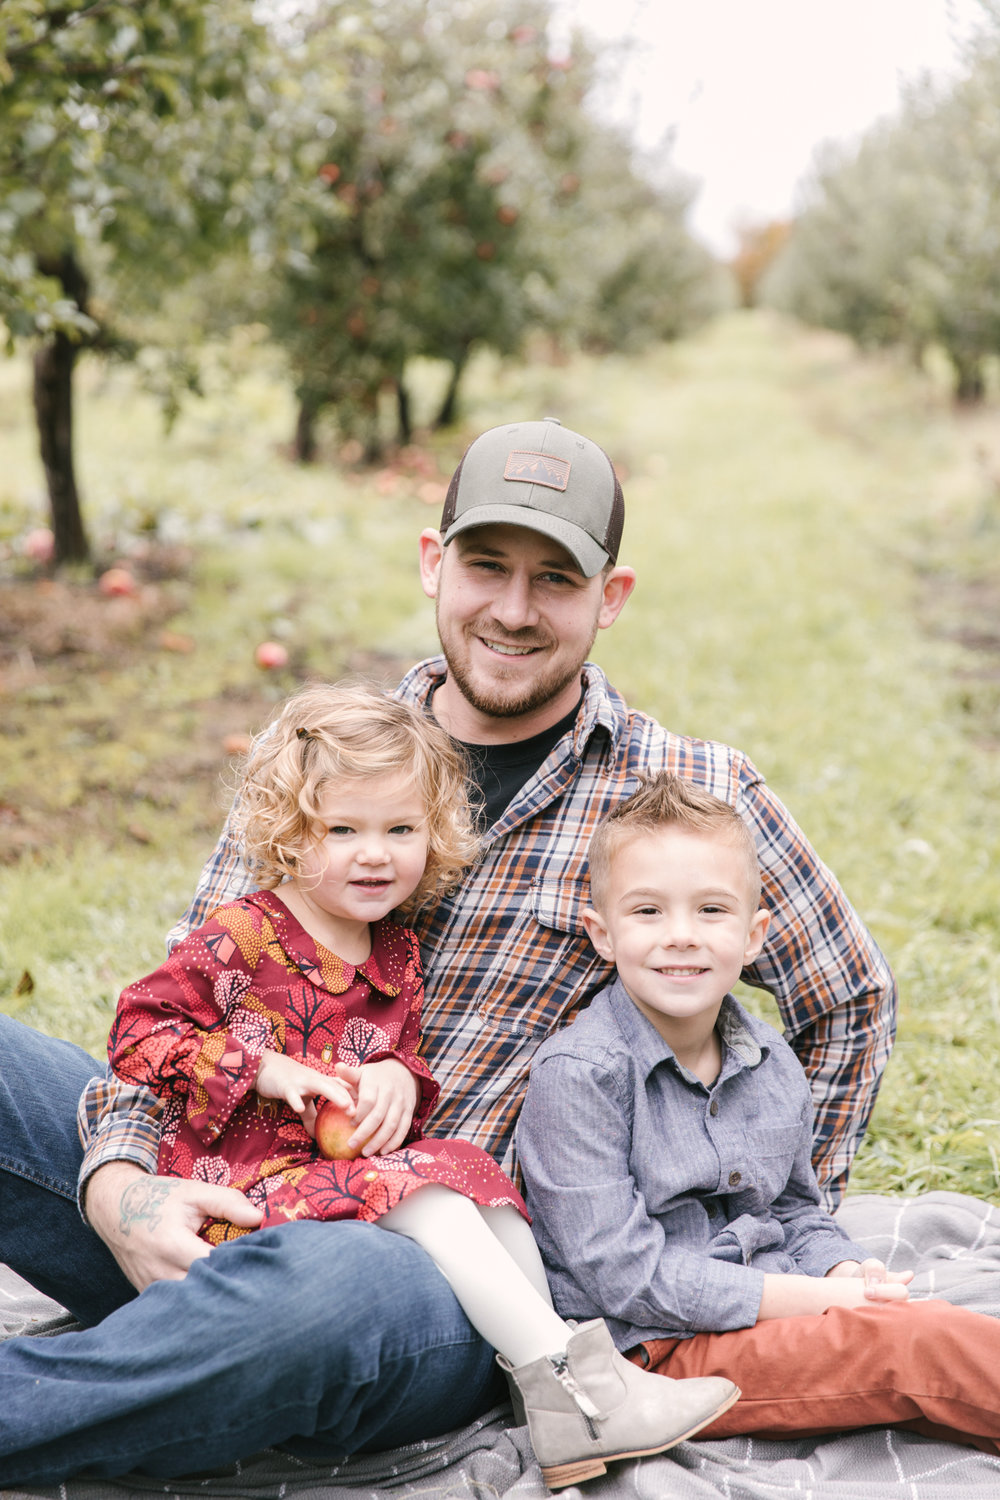 family-photography-session-at-hartford-apple-orchards-hartford-ohio-by-family-photographer-christie-leigh-photo-37.JPG